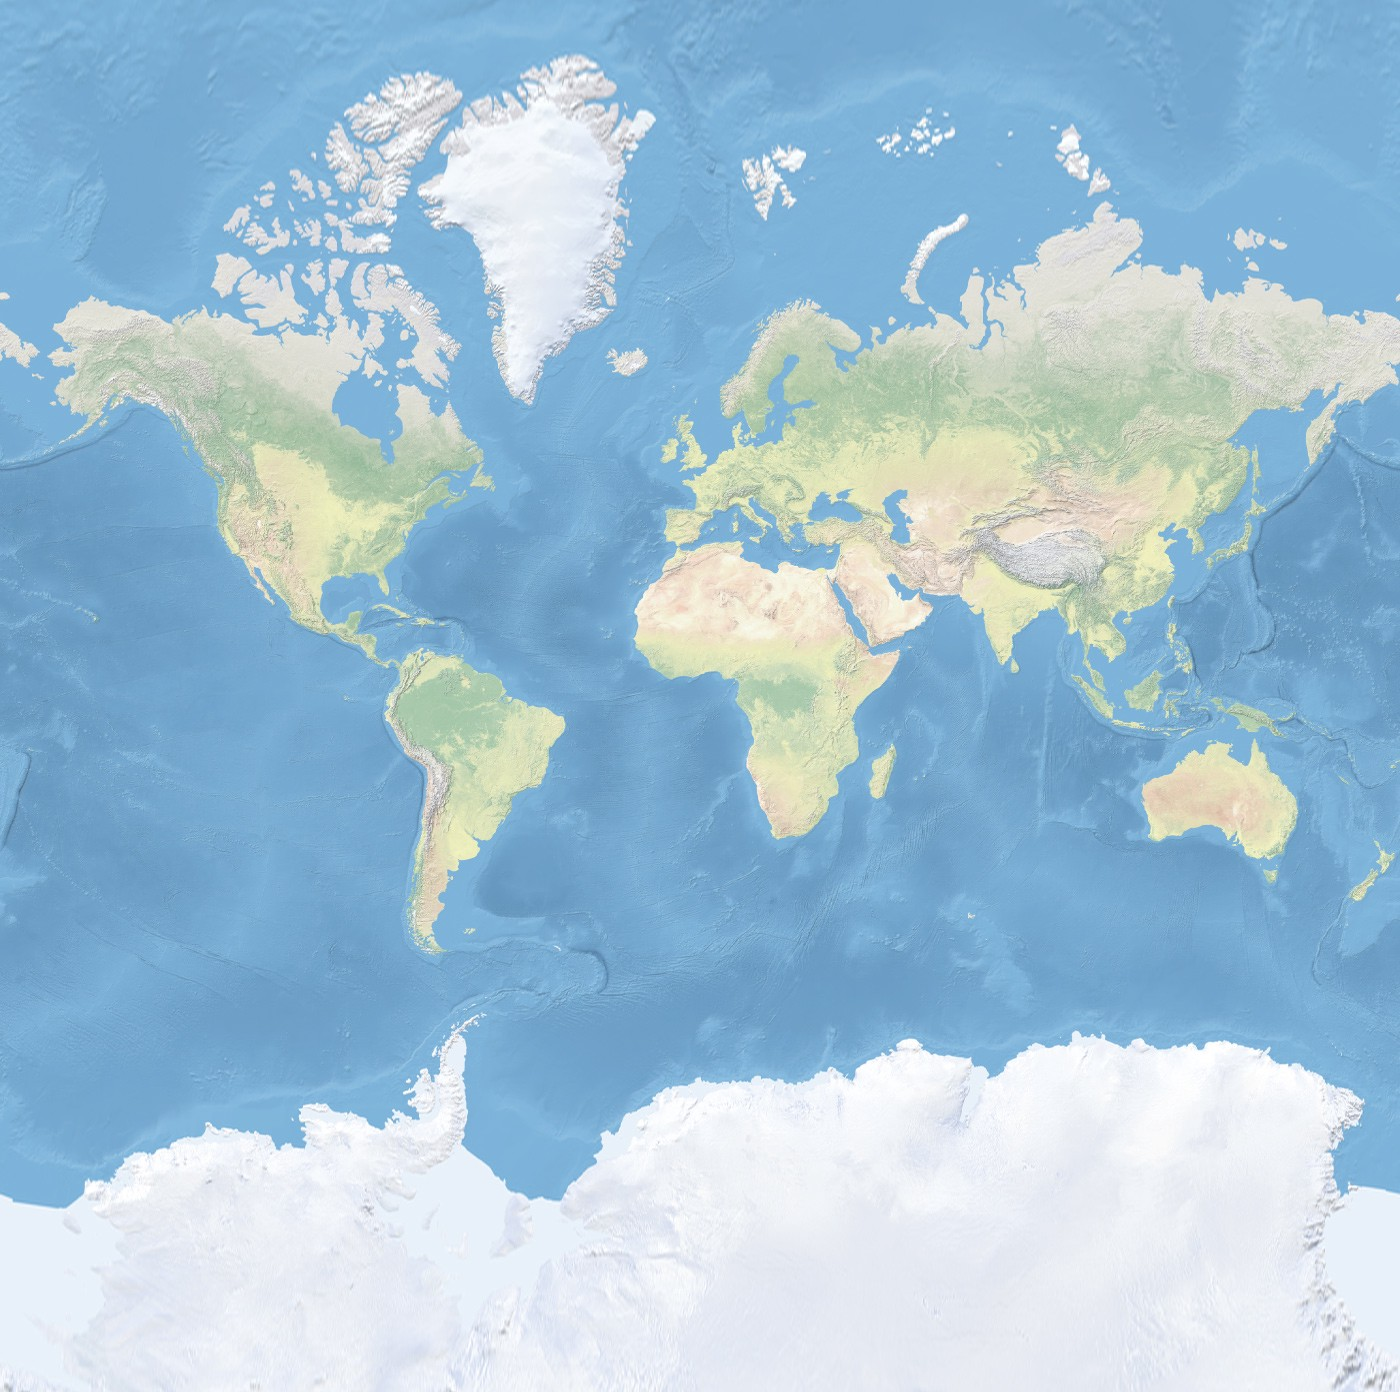 A Gentle Introduction to GDAL, Part 2: Map Projections & gdalwarp